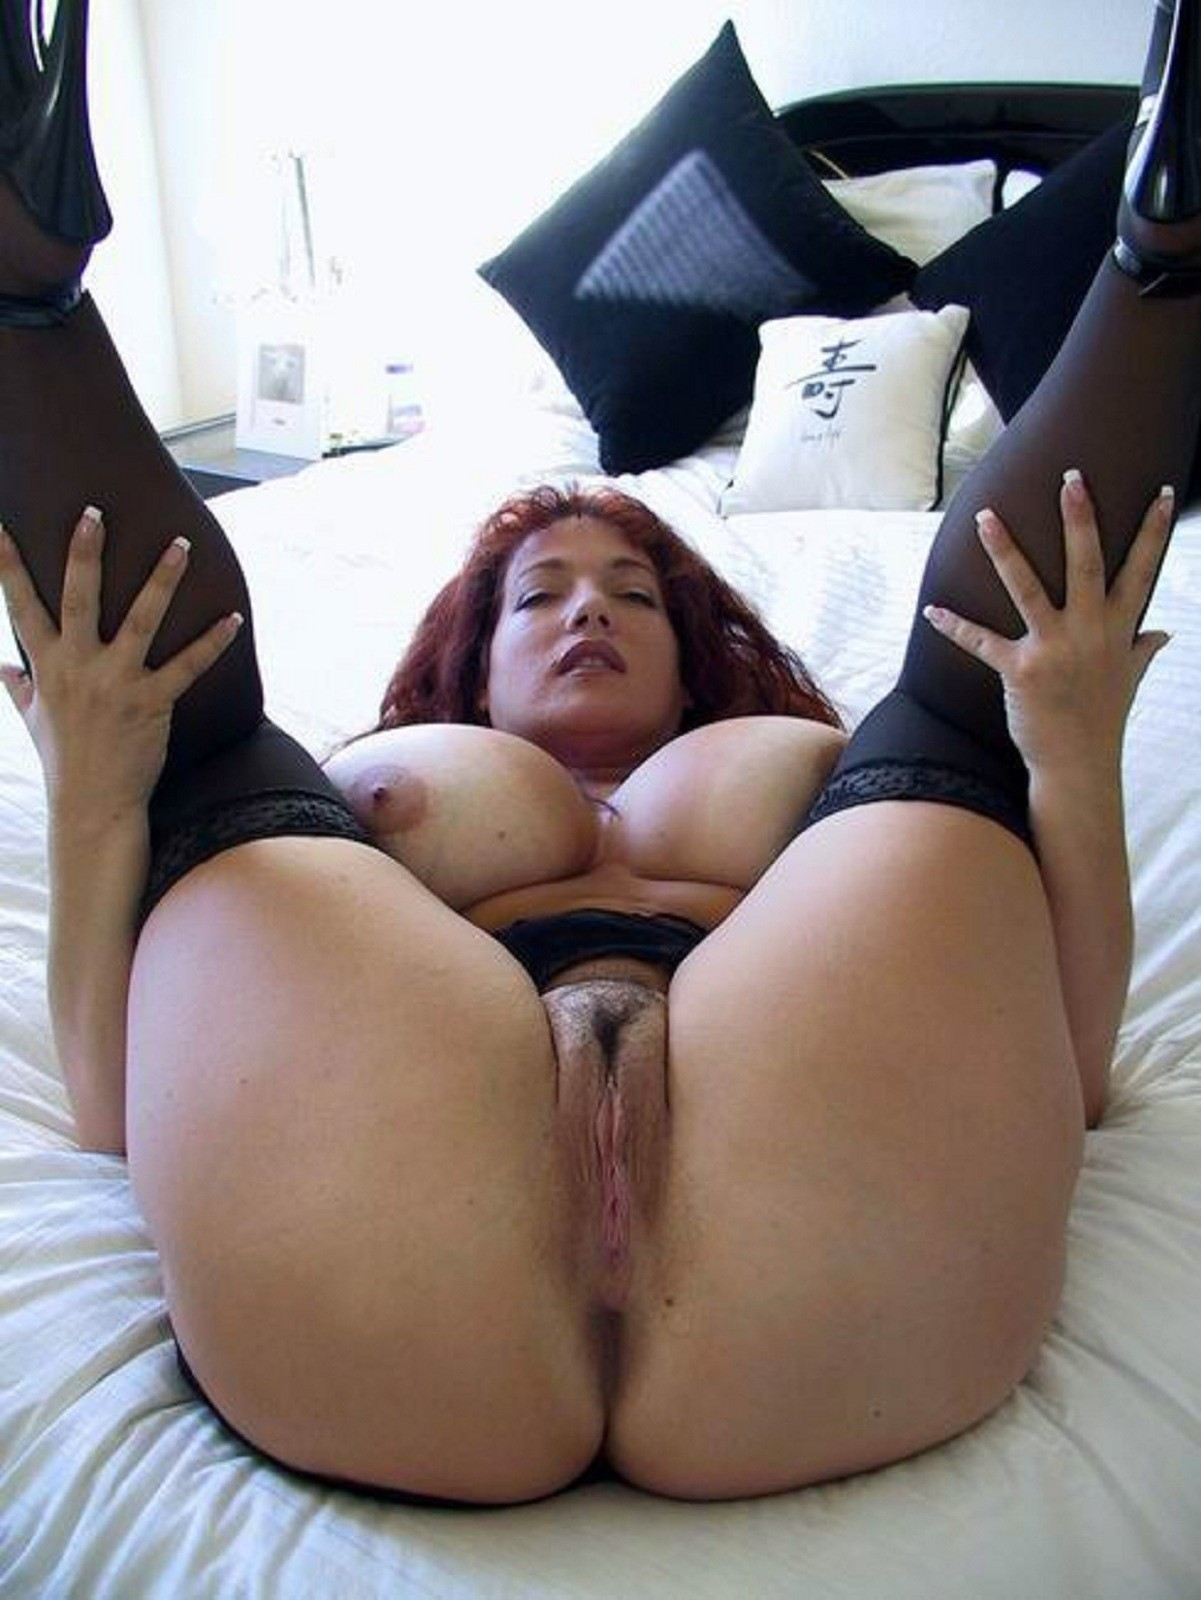 Rather valuable Legs spread wide open for black cock something